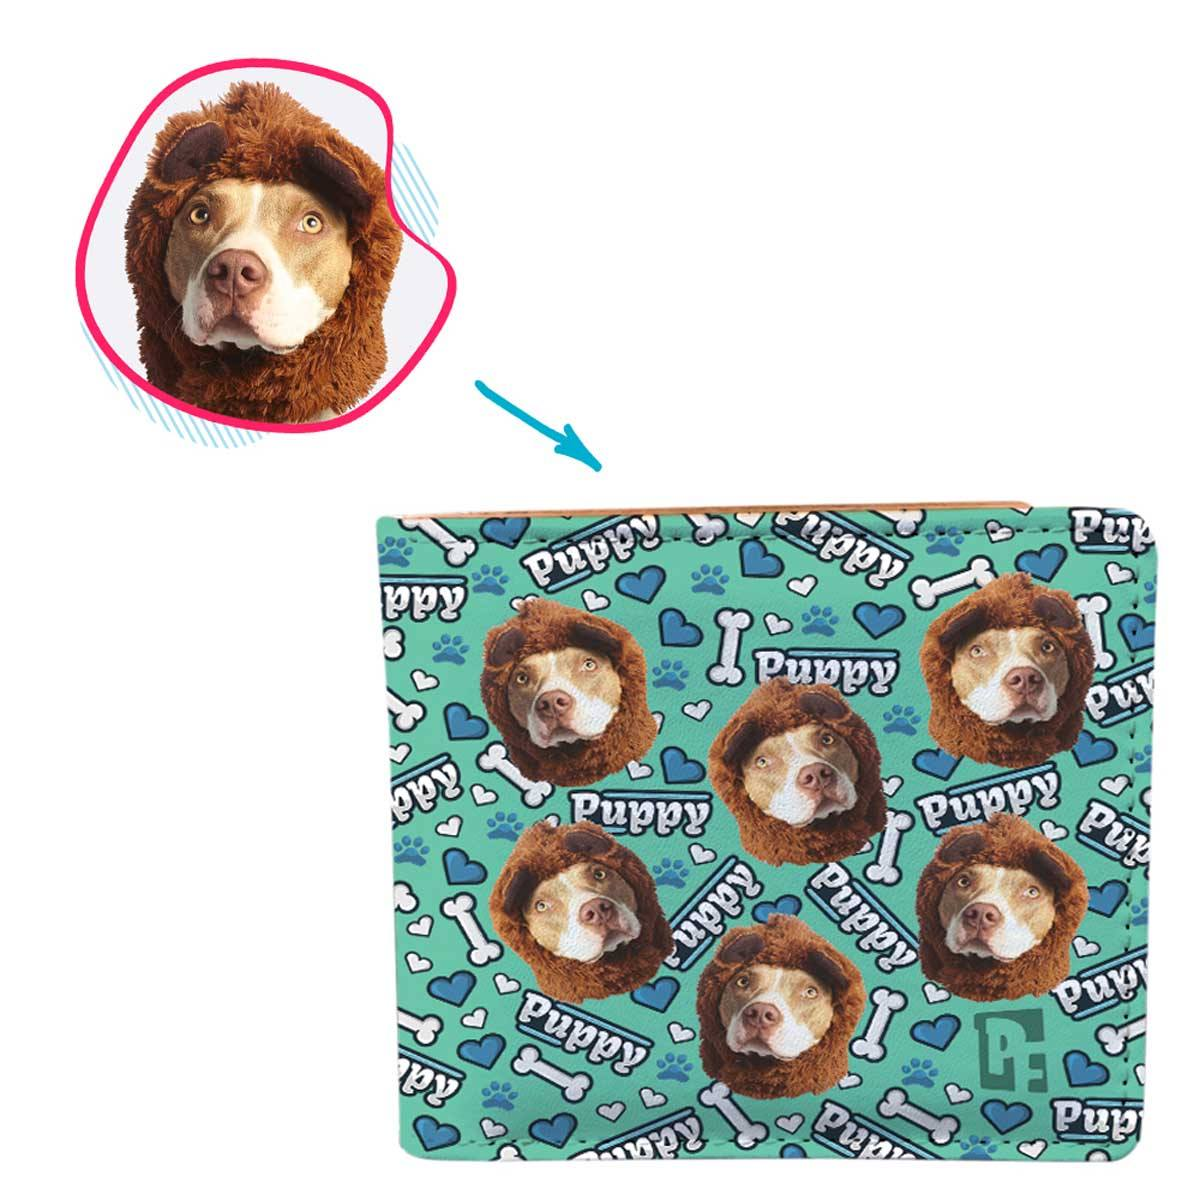 mint Puppy wallet personalized with photo of face printed on it